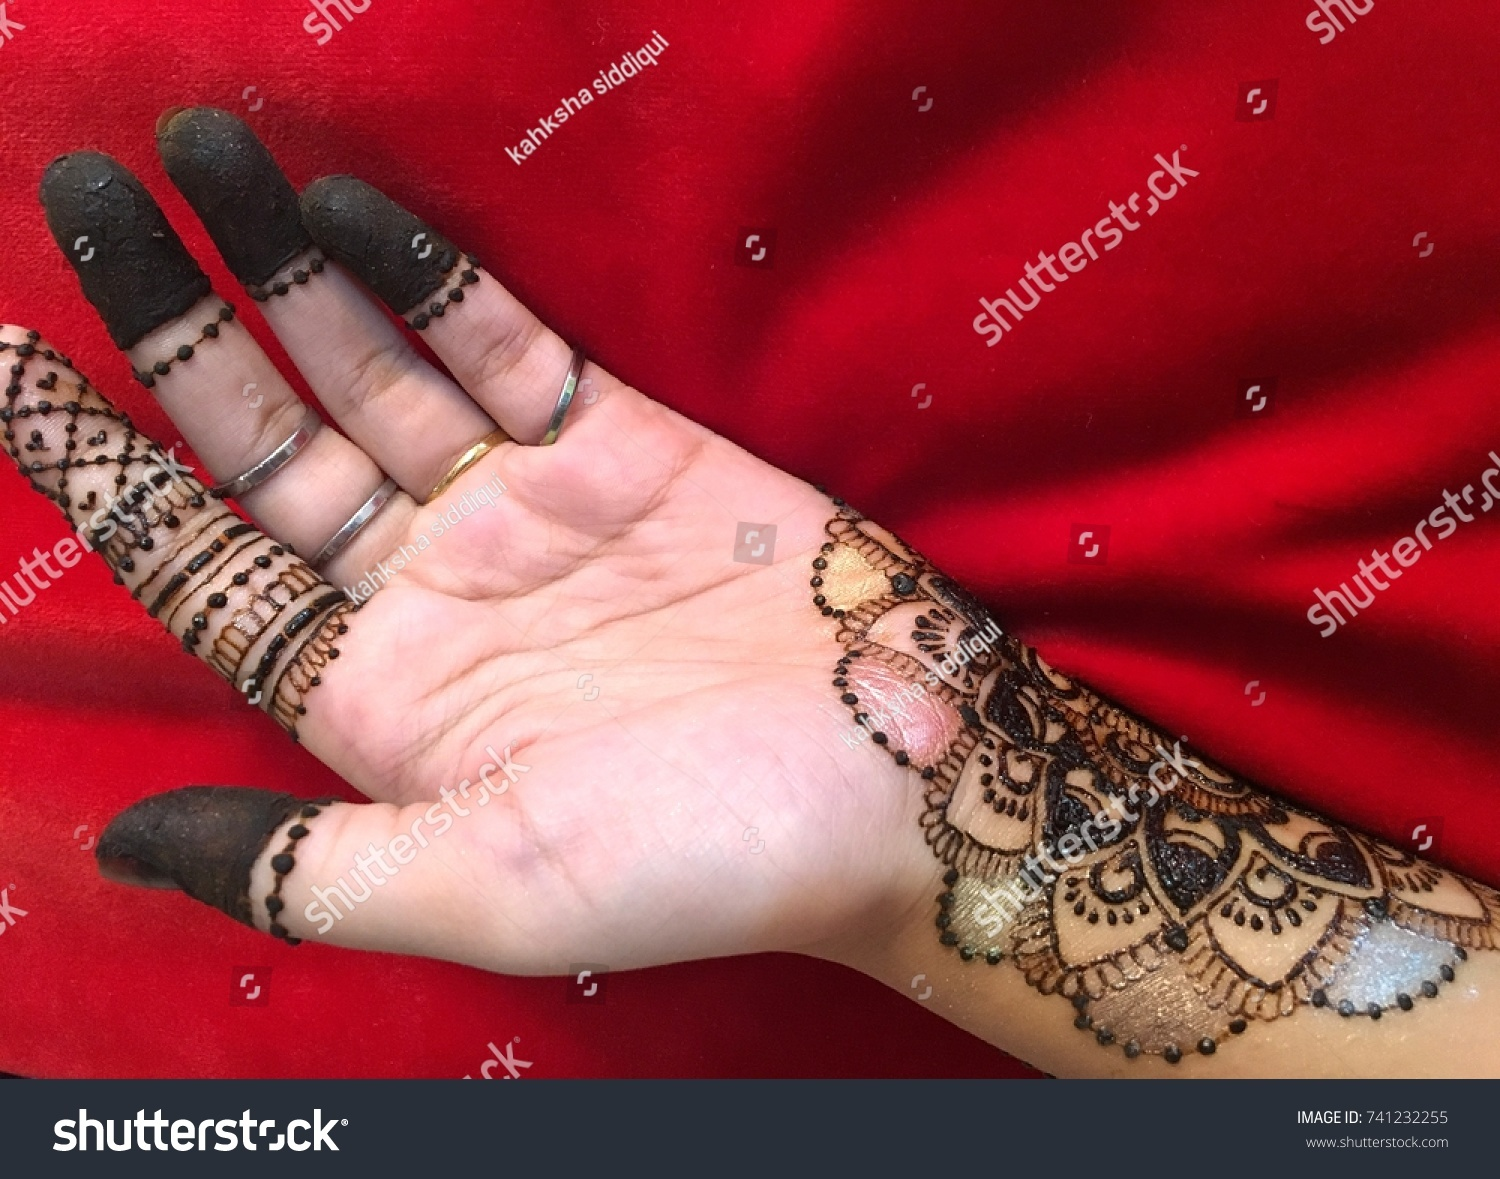 A To Z Mehndi Designs : Beautiful mehndi design on hands blur stock photo royalty free